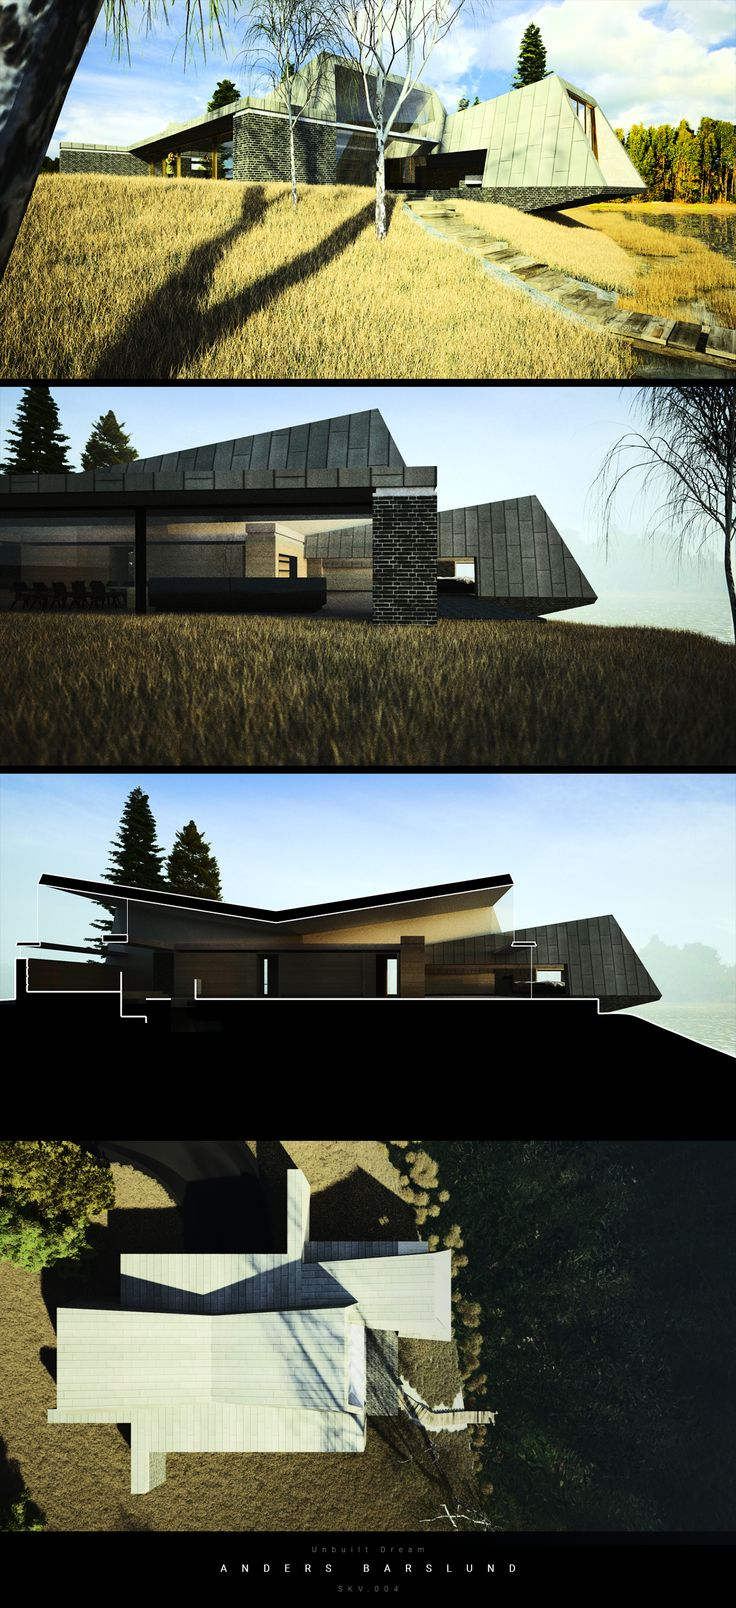 Unbuilt Dream - SKV Villa on slope, hanging over a small lake. Preproject for actual build.